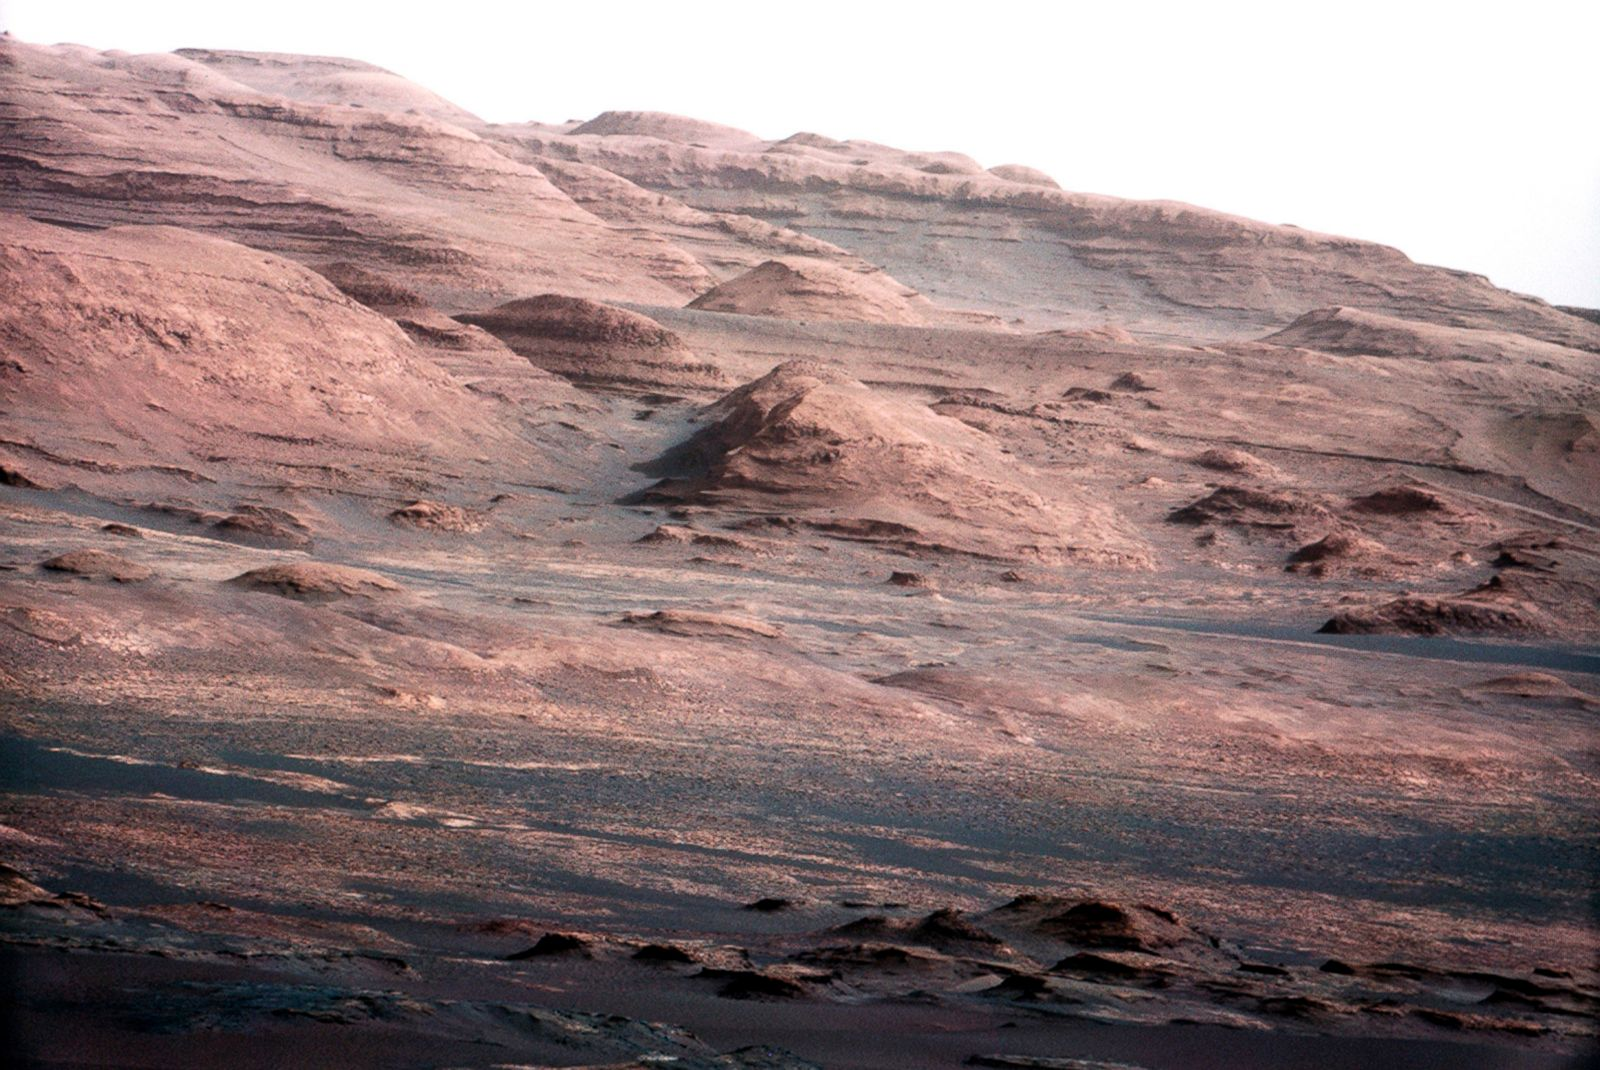 Have photos been taken of the surface of Mars?